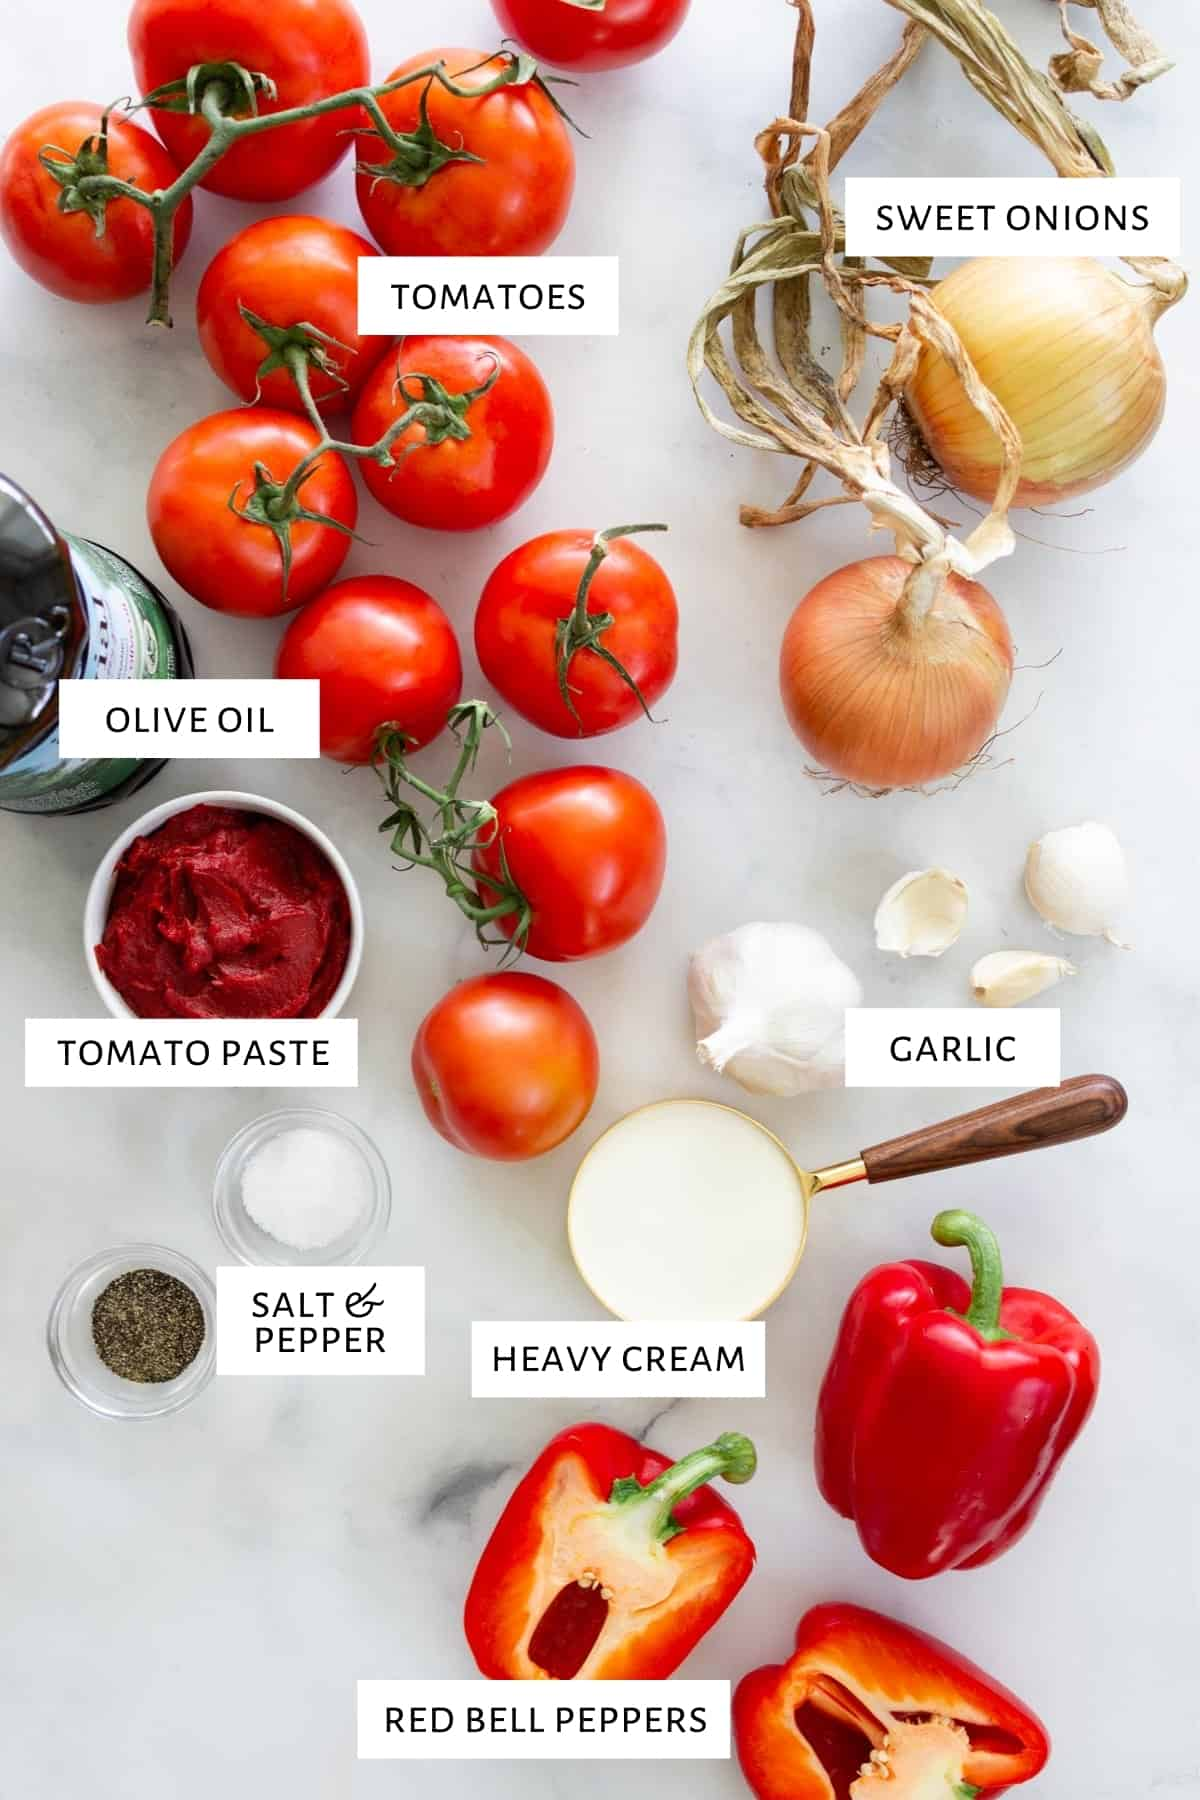 The ingredients to make roasted red pepper tomato basil soup are spread out on a marble countertop.